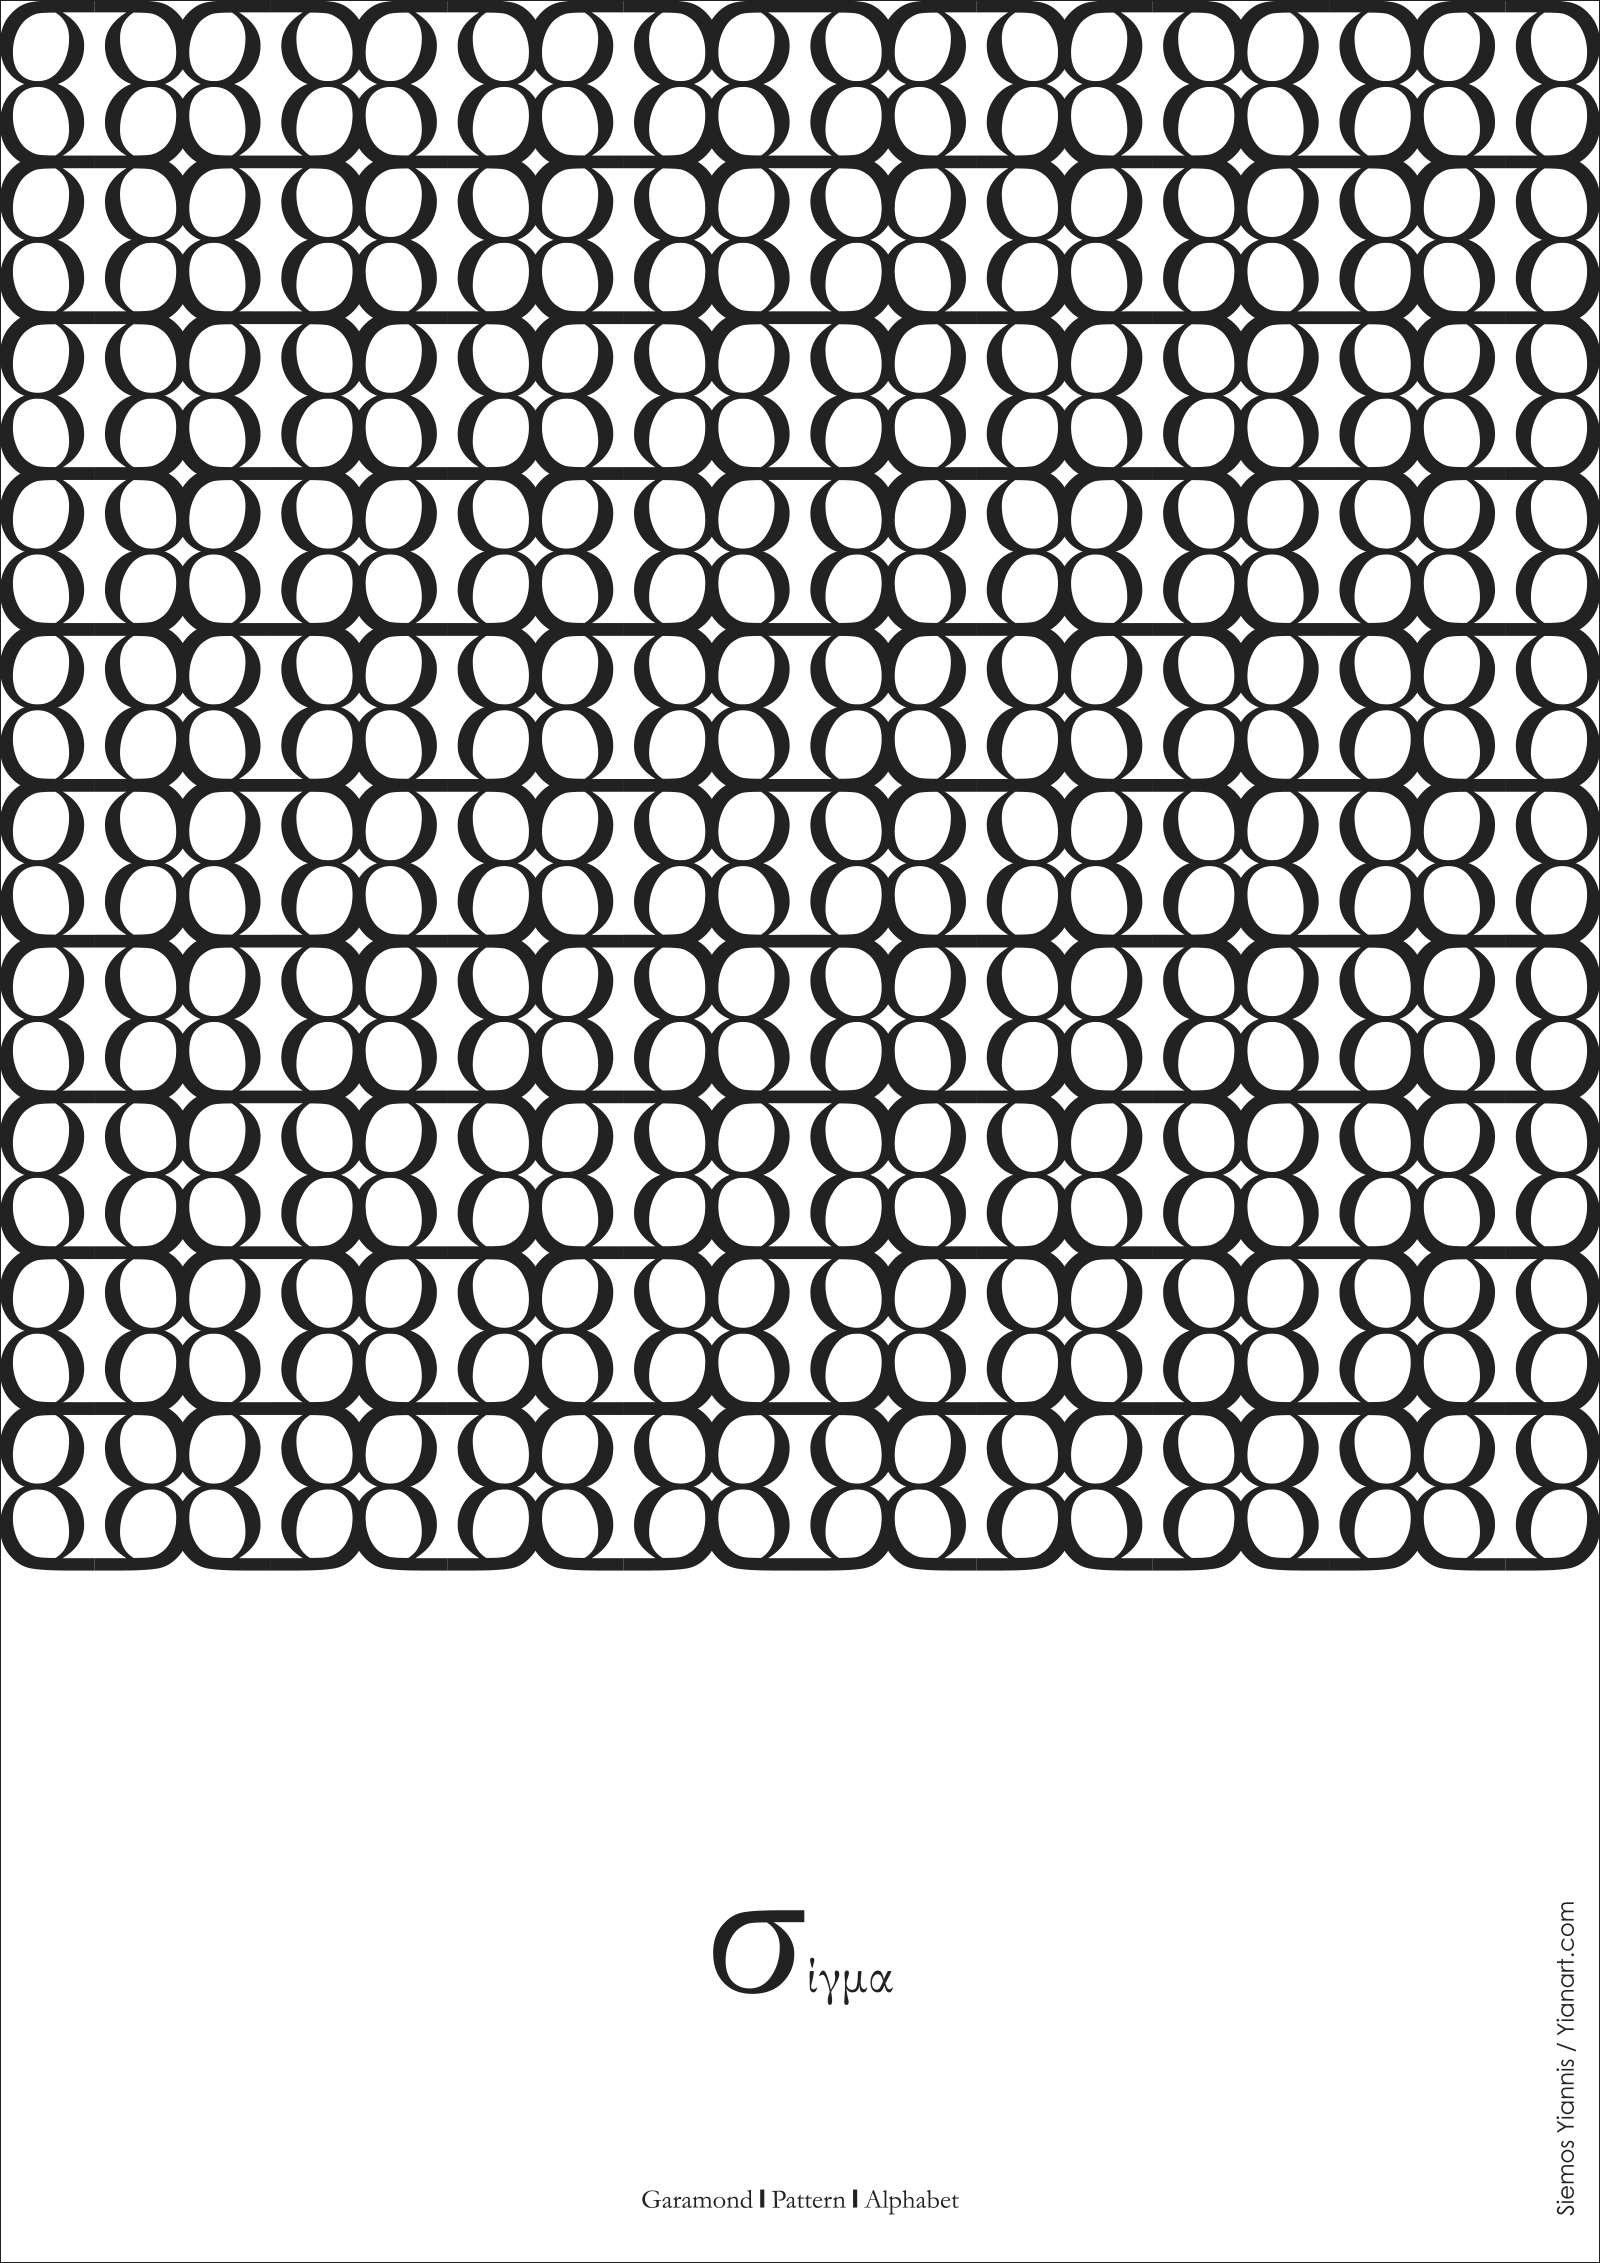 Greek Fonts Patterns_Sigma2_Yianart